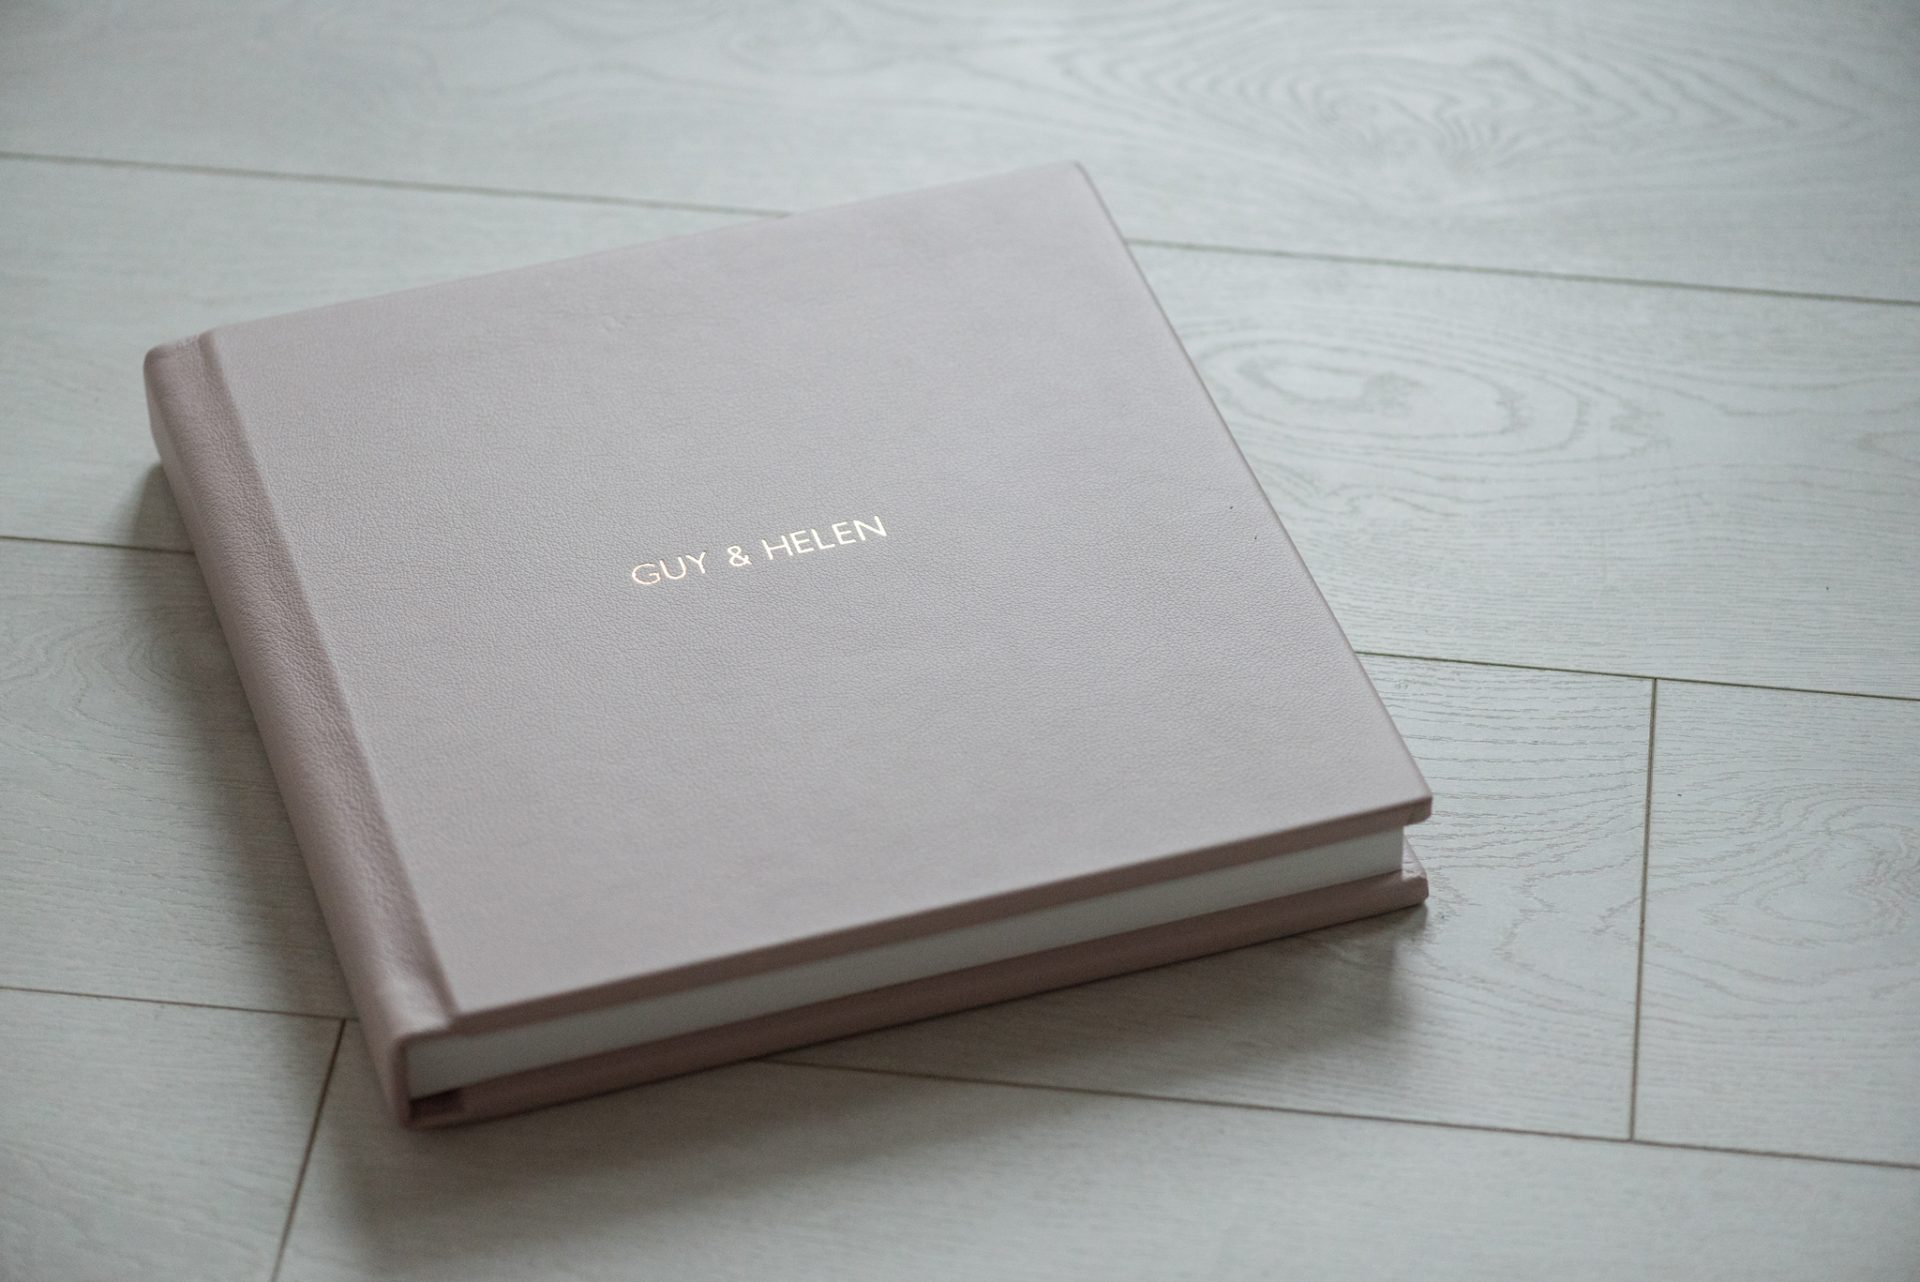 Blush pink cover with gold foil title